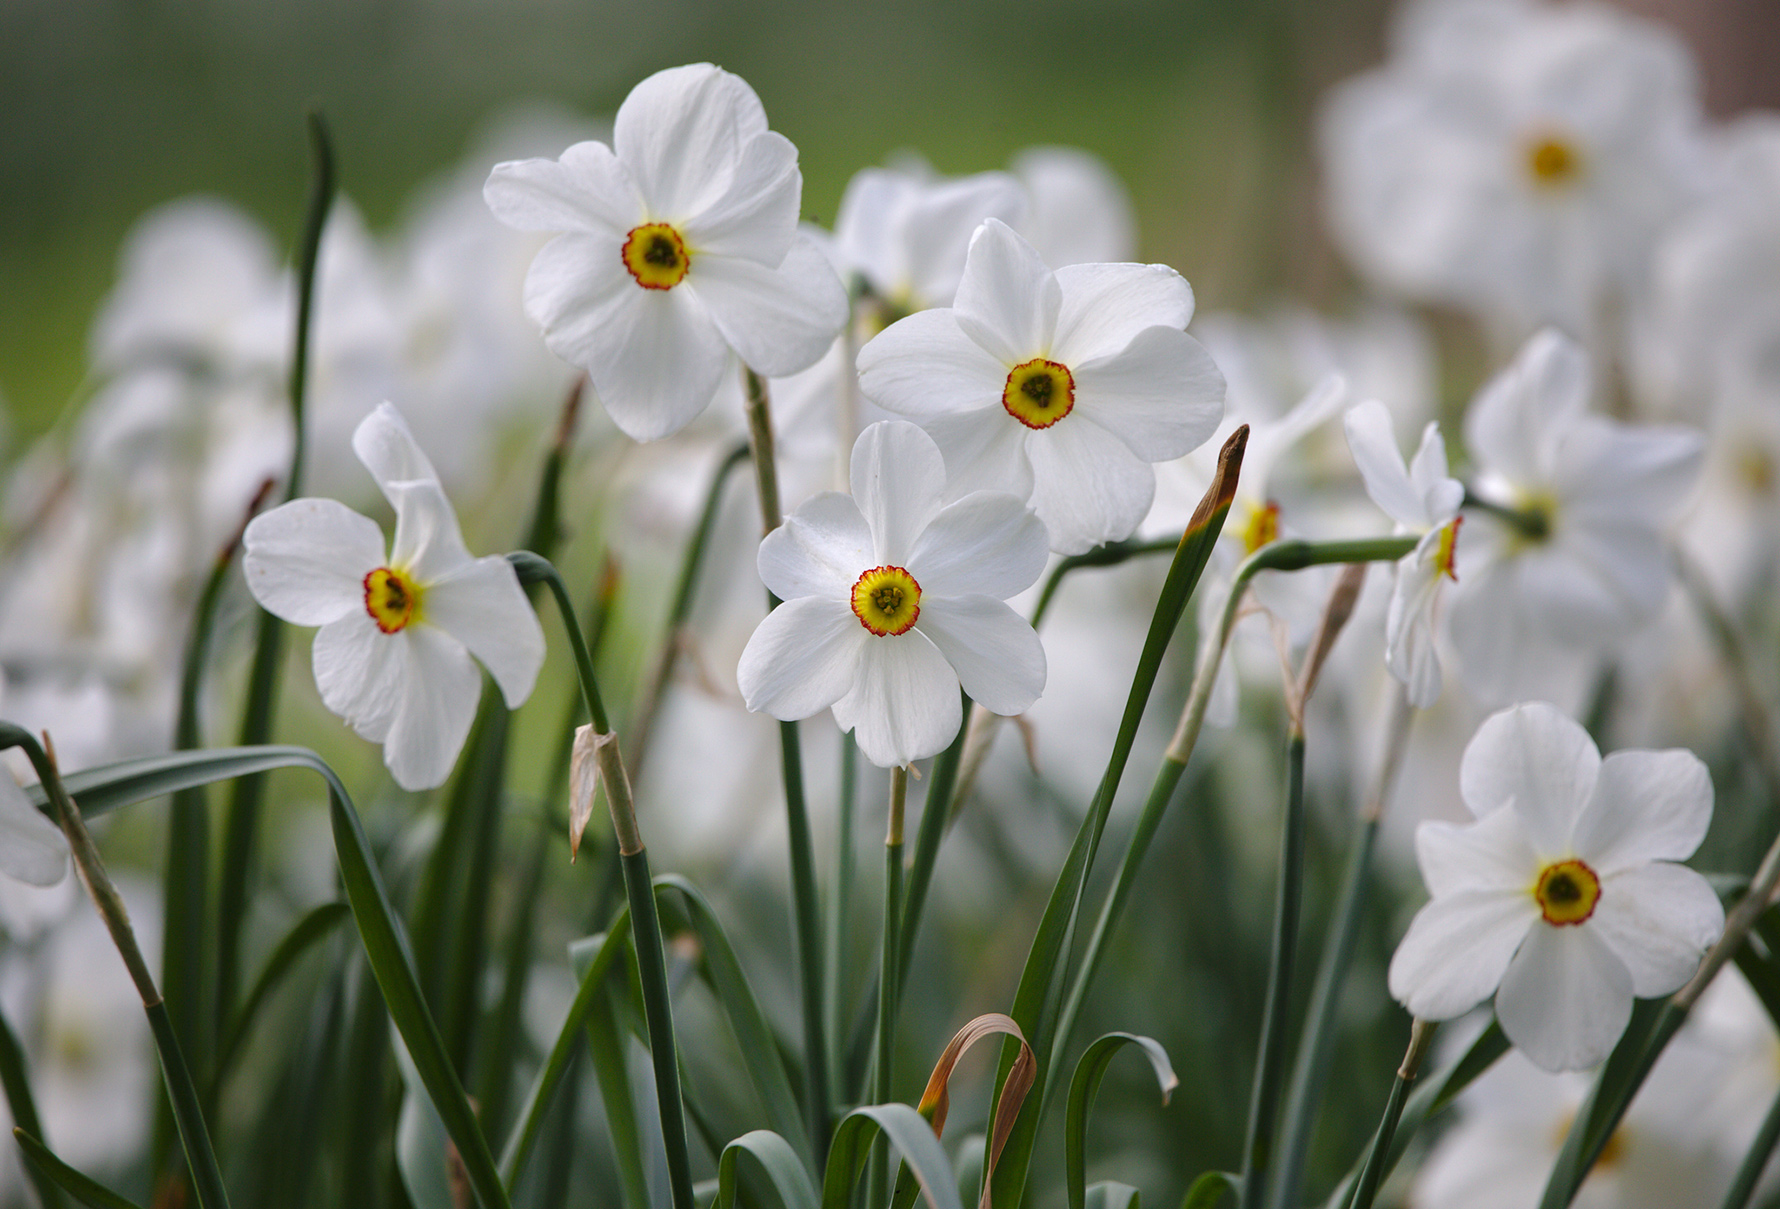 A bunch of white daffodils